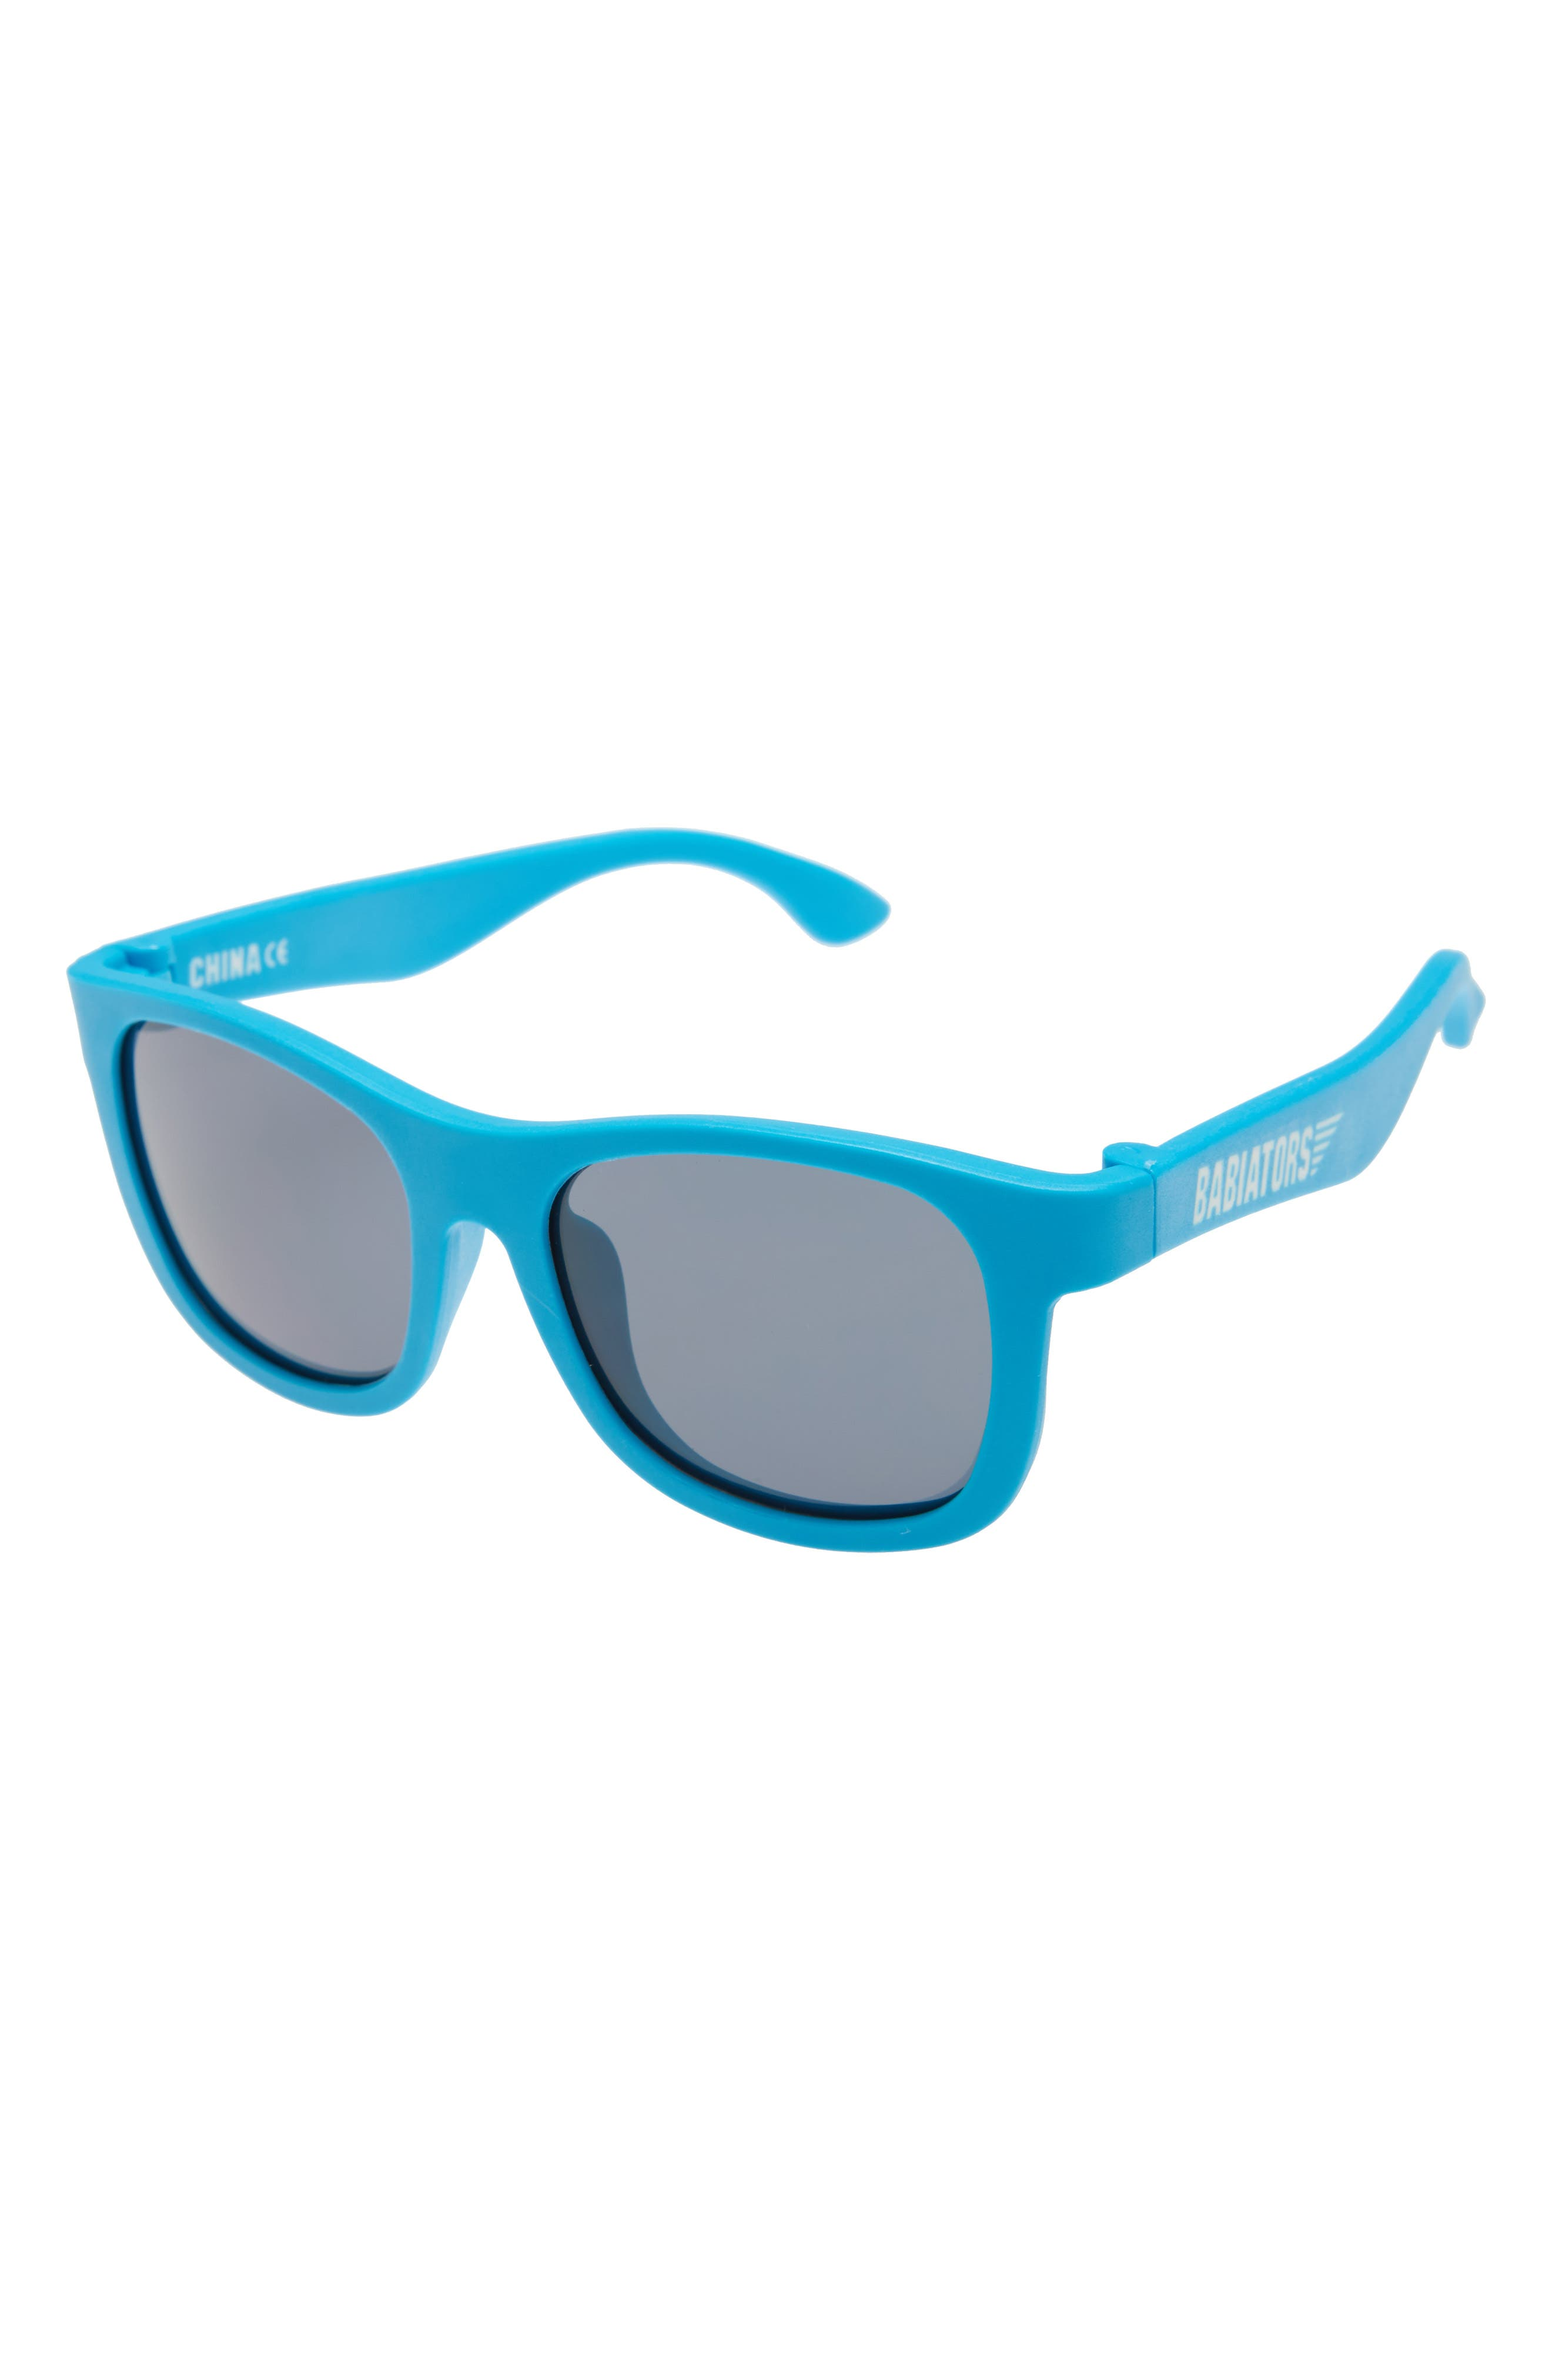 Original Navigators Sunglasses,                         Main,                         color, BLUE CRUSH